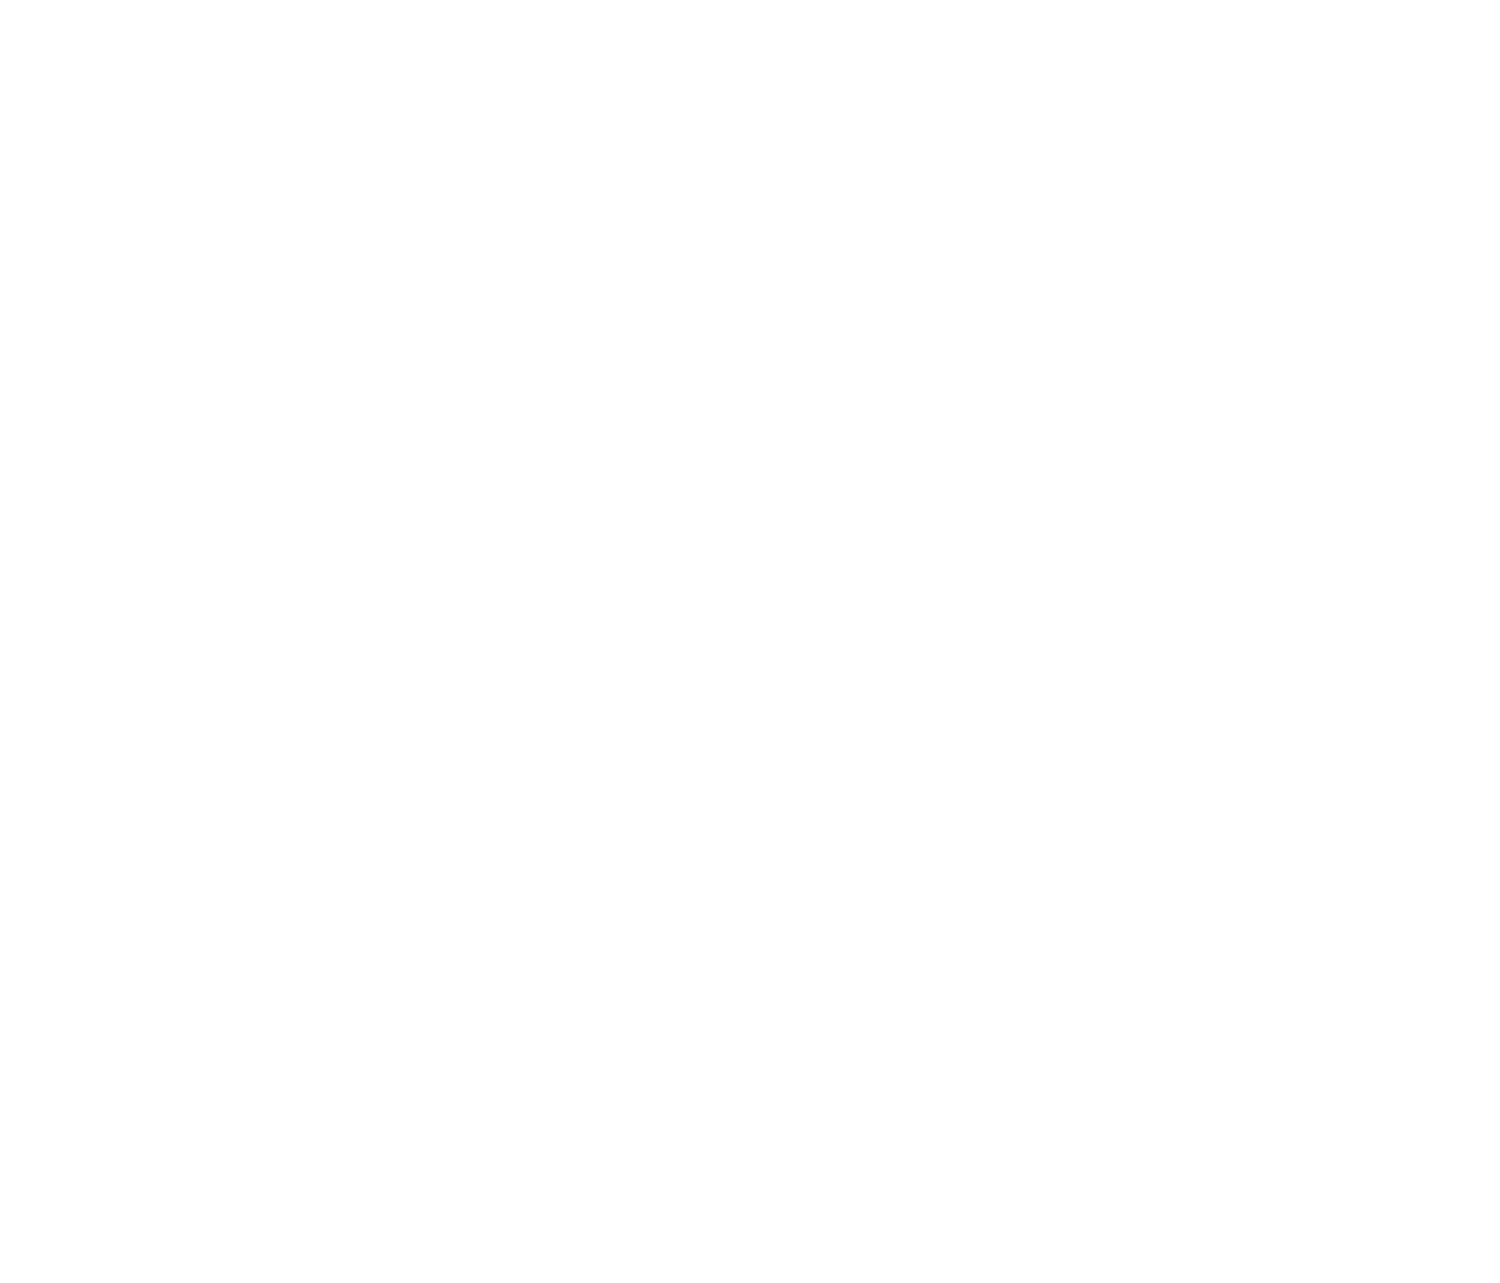 Alpha Baselayer Co.